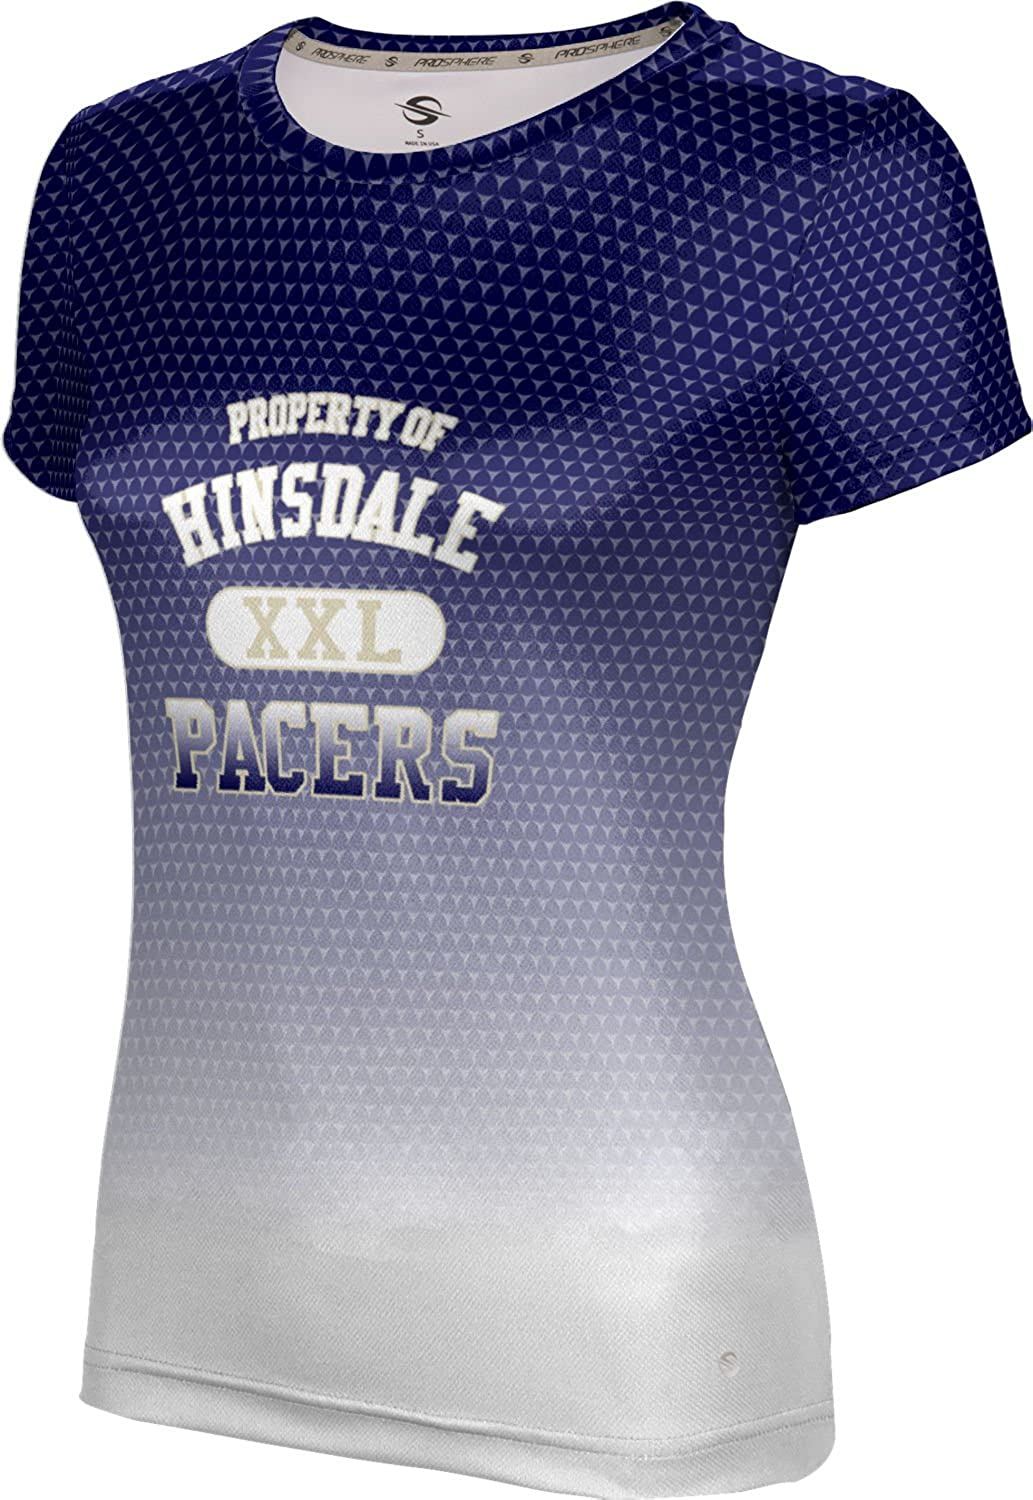 ProSphere Women's Hinsdale High School Zoom Tech Tee